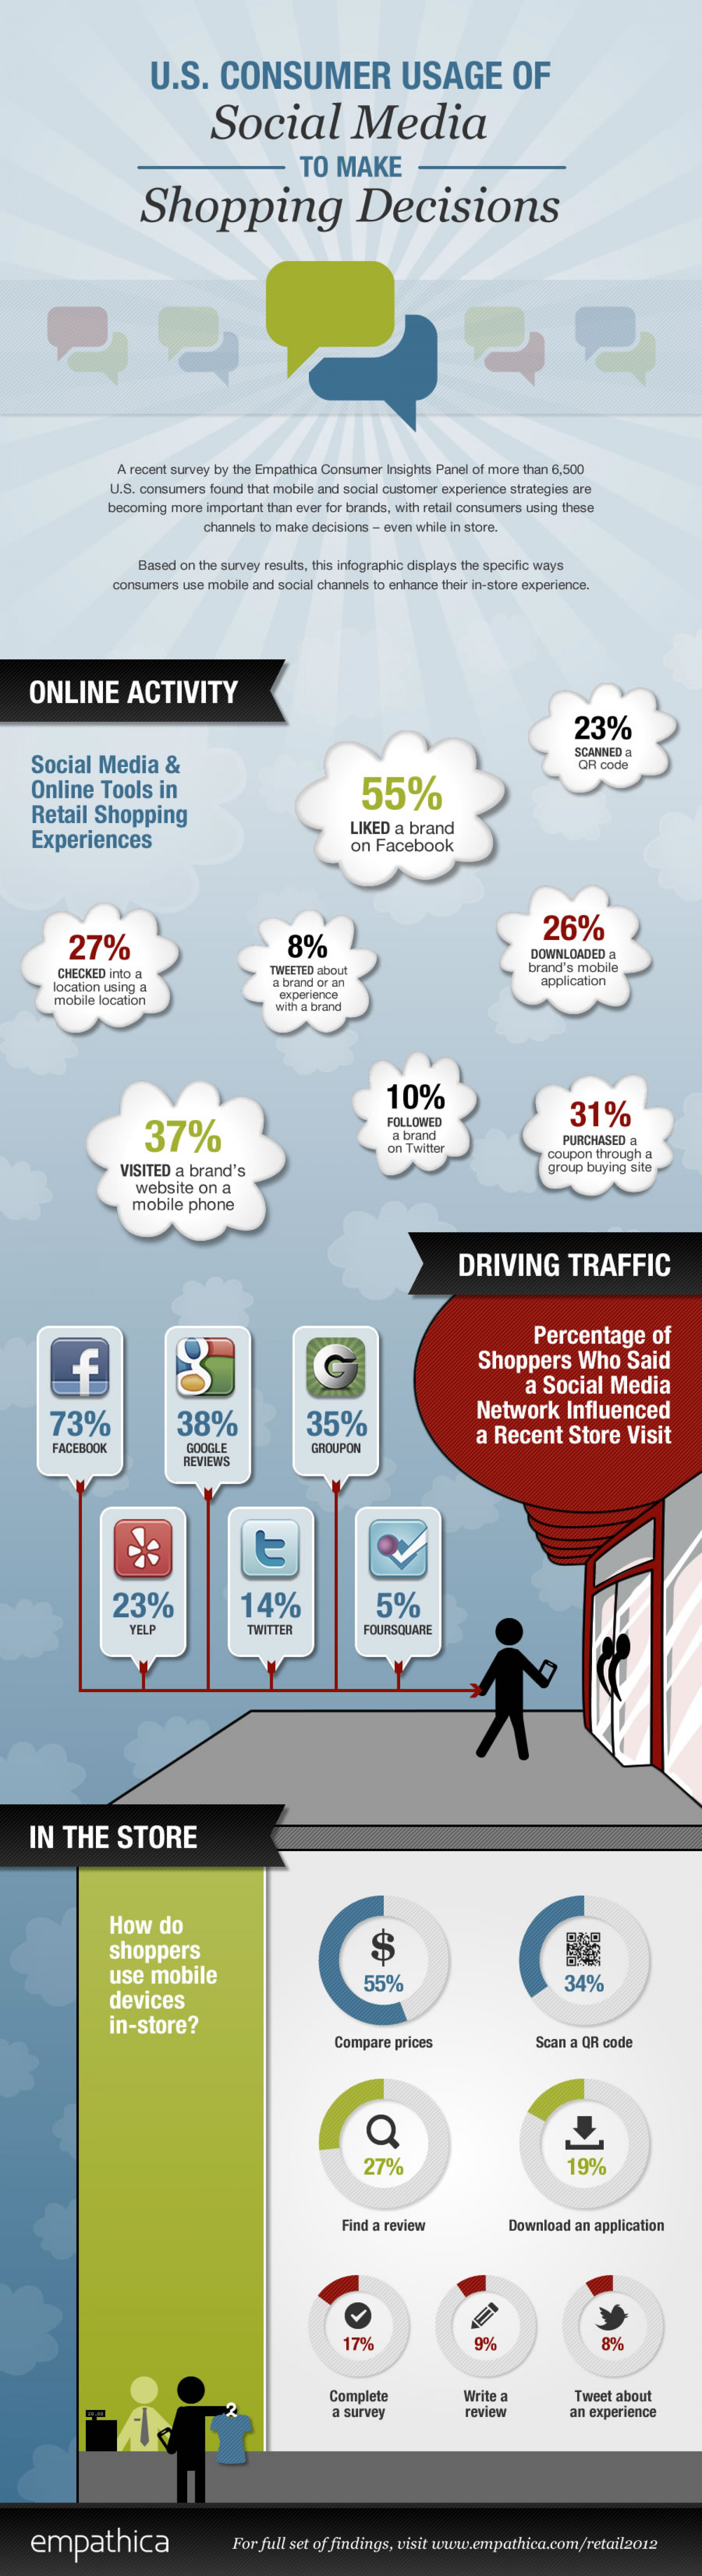 US Consumer Usage Of Social Media To Make Shopping Decisions Infographic